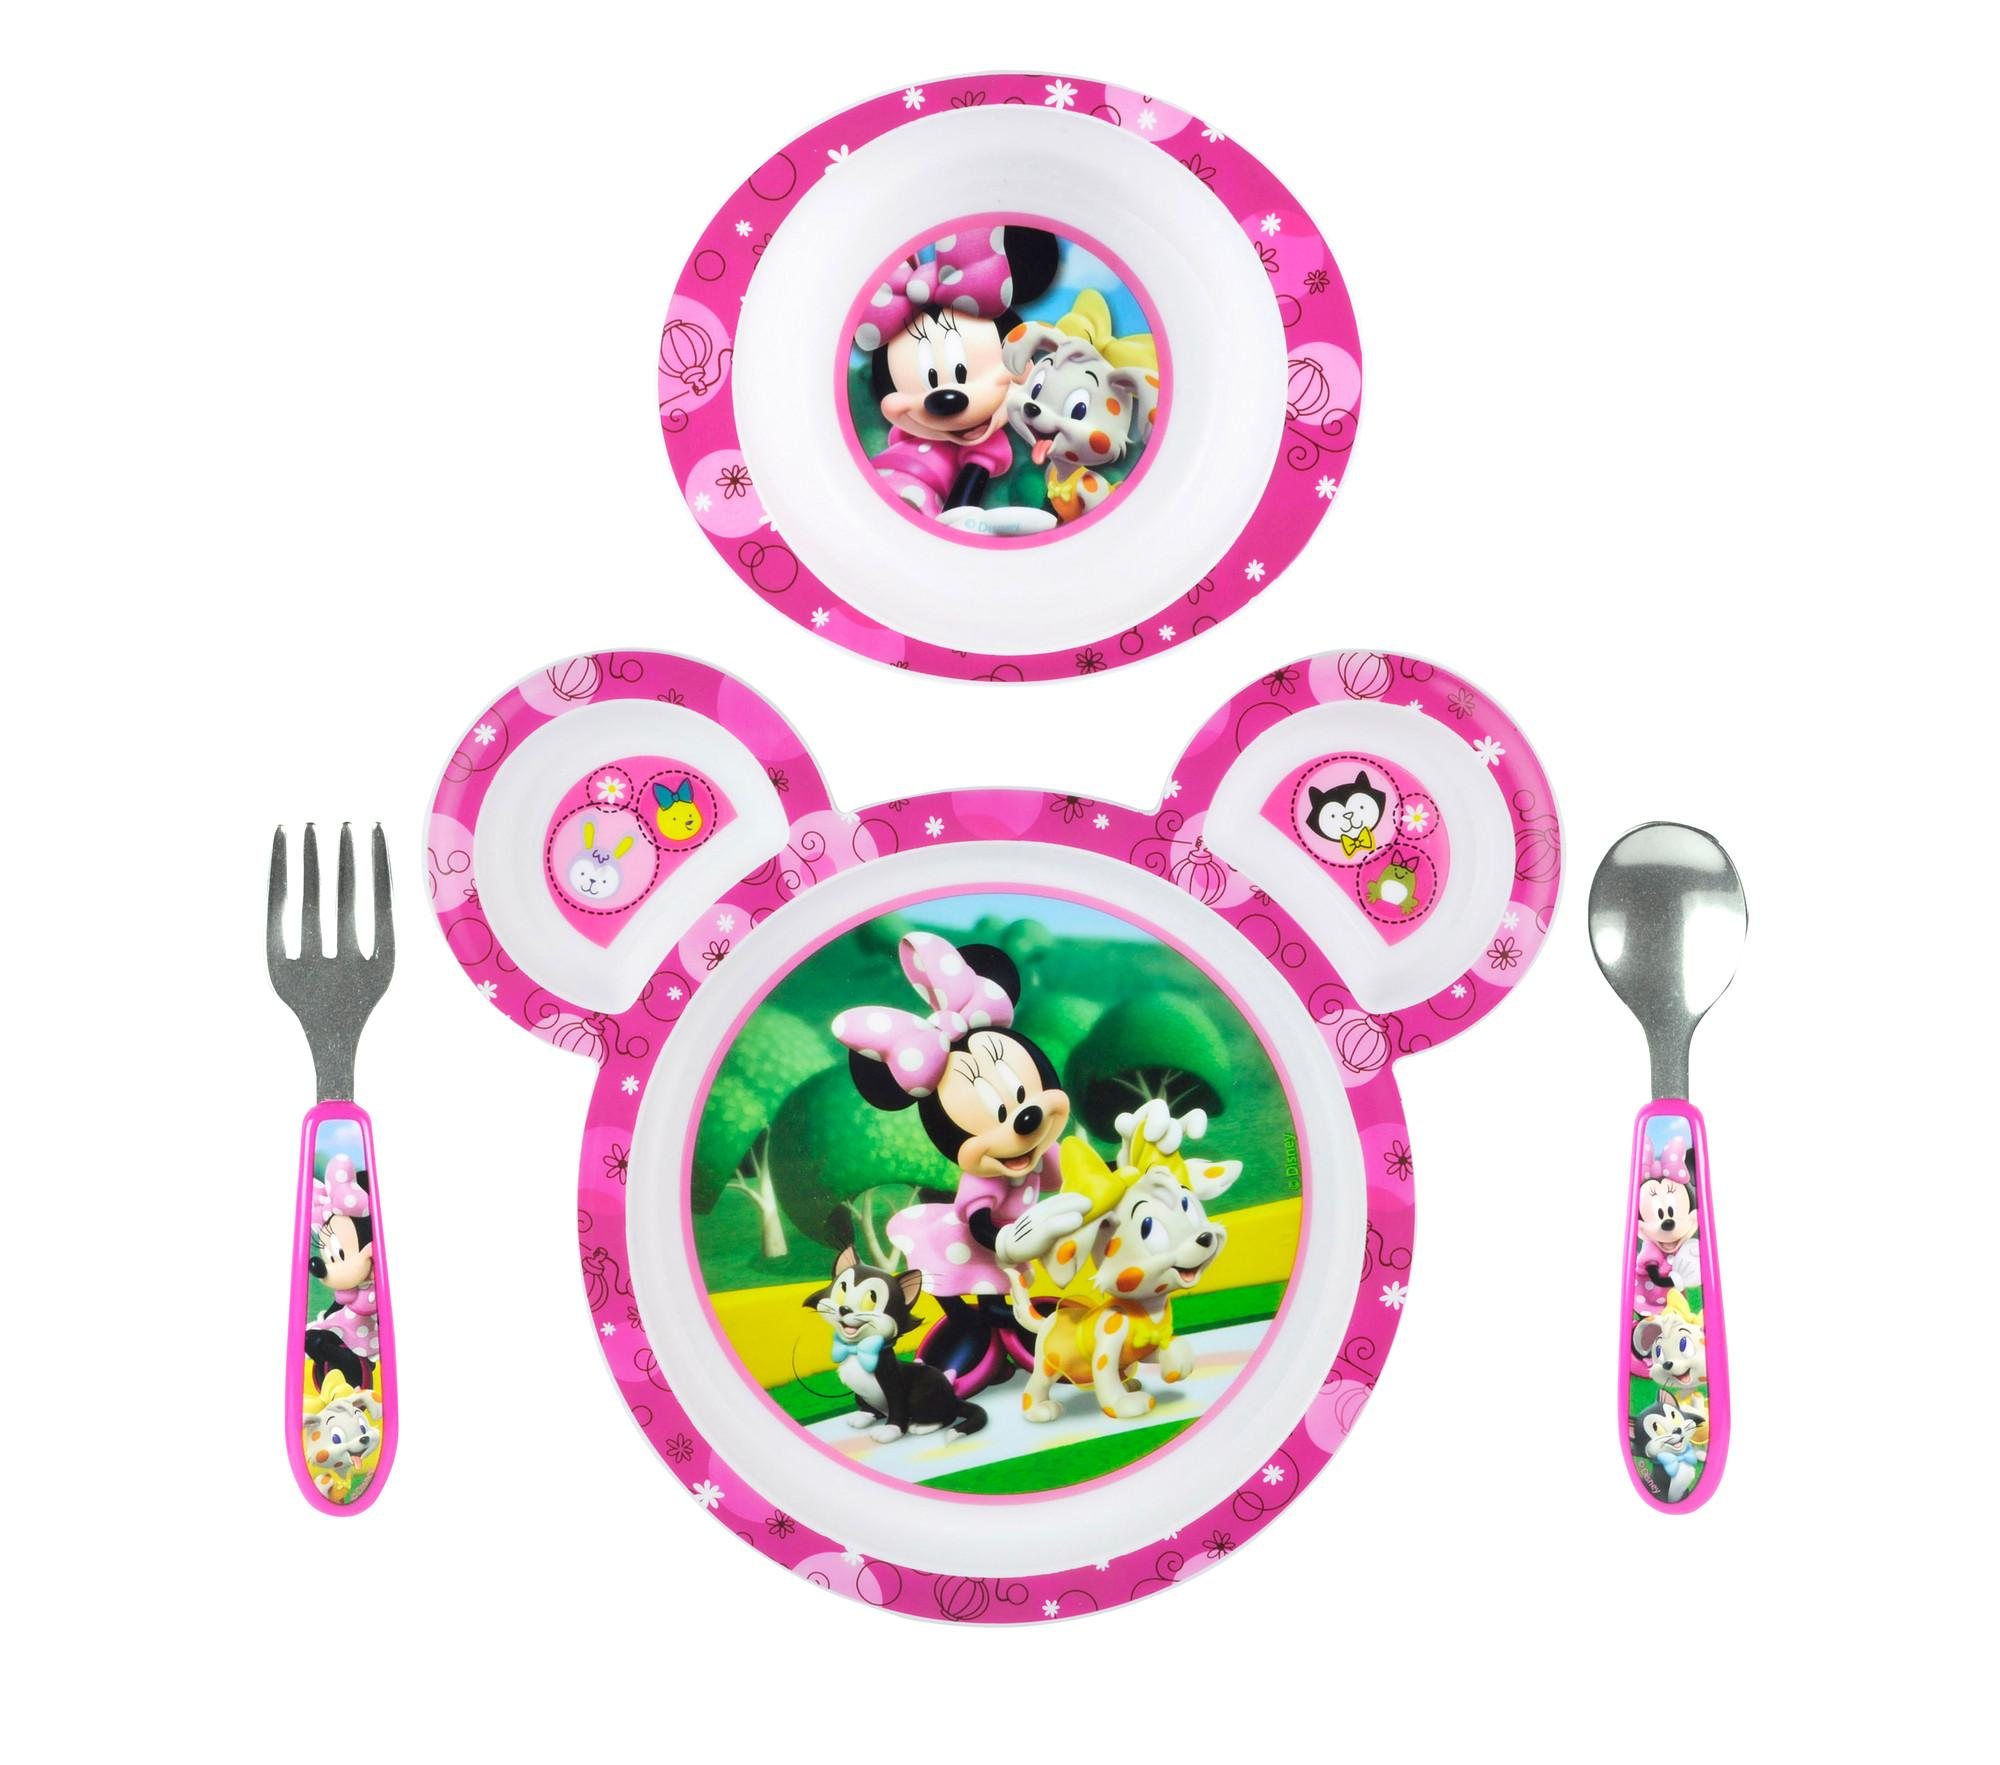 2000x1765 The First Years Baby Minnie Mouse Flip Top Straw Cup